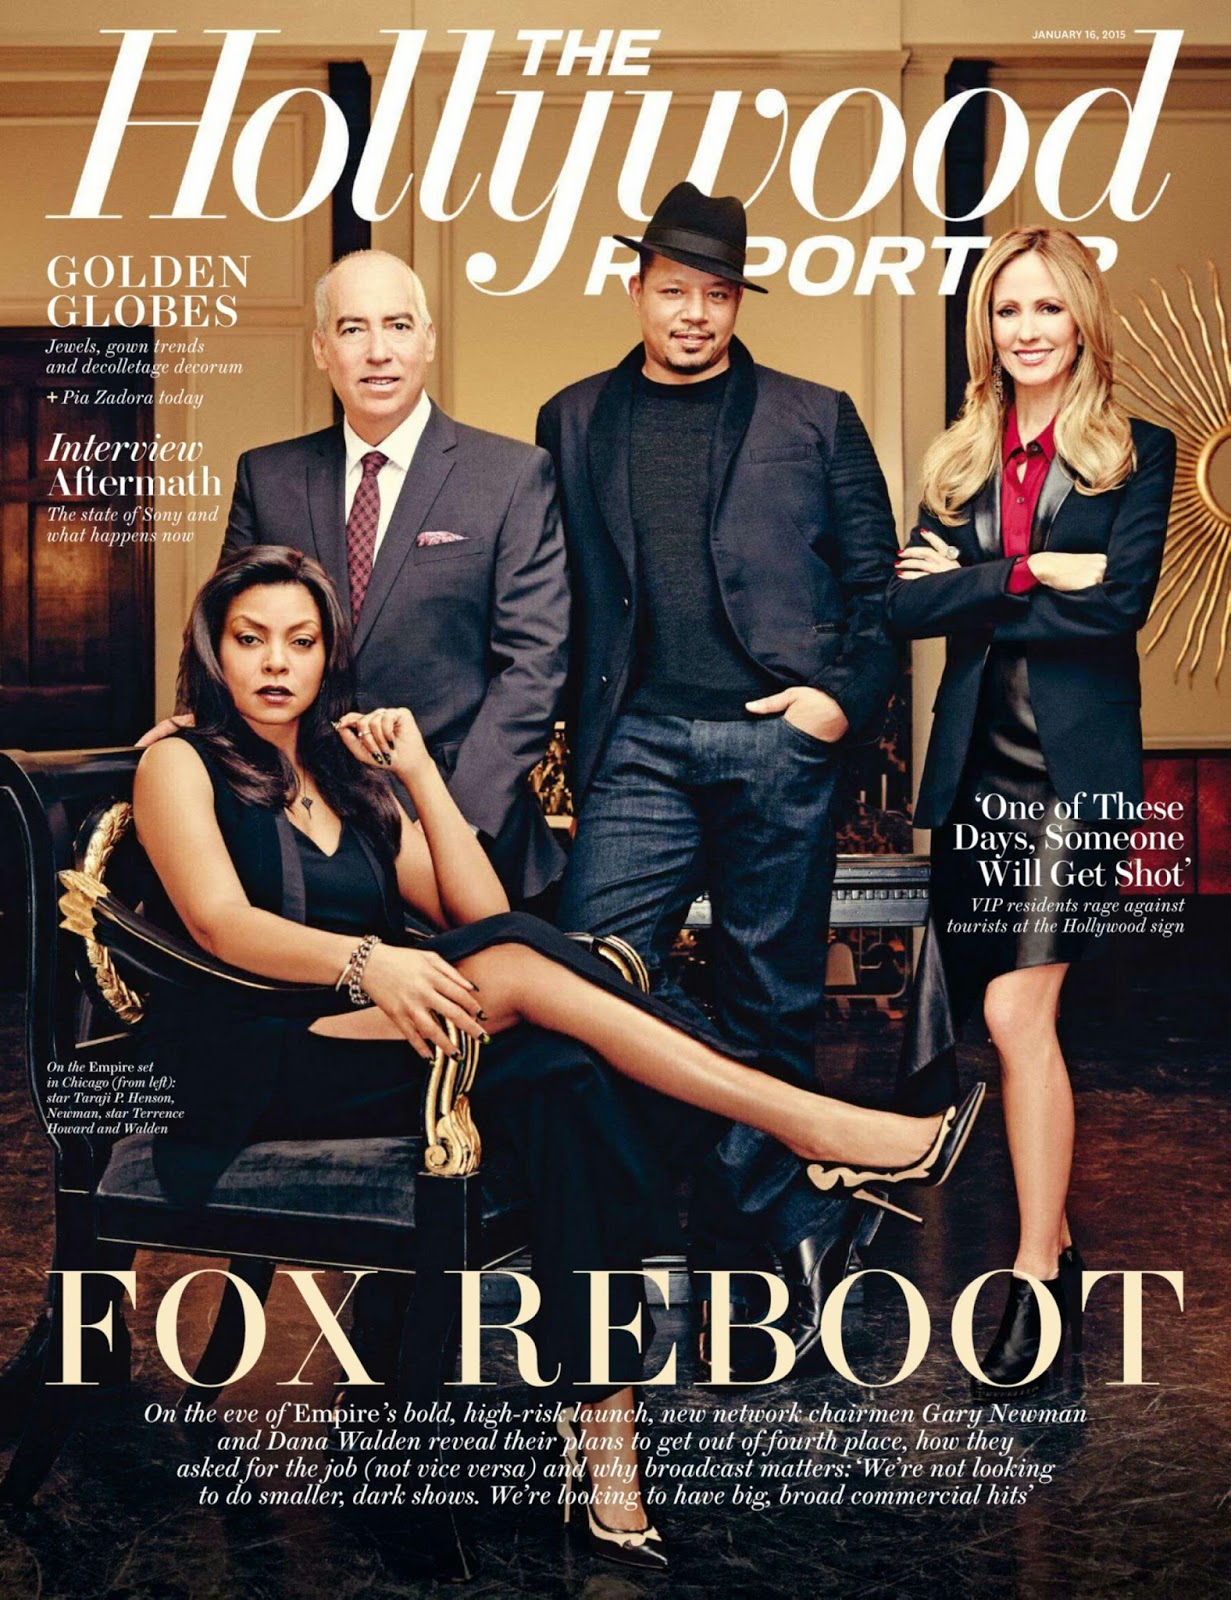 Taraji P Henson - The Hollywood Reporter, USA, January 2015